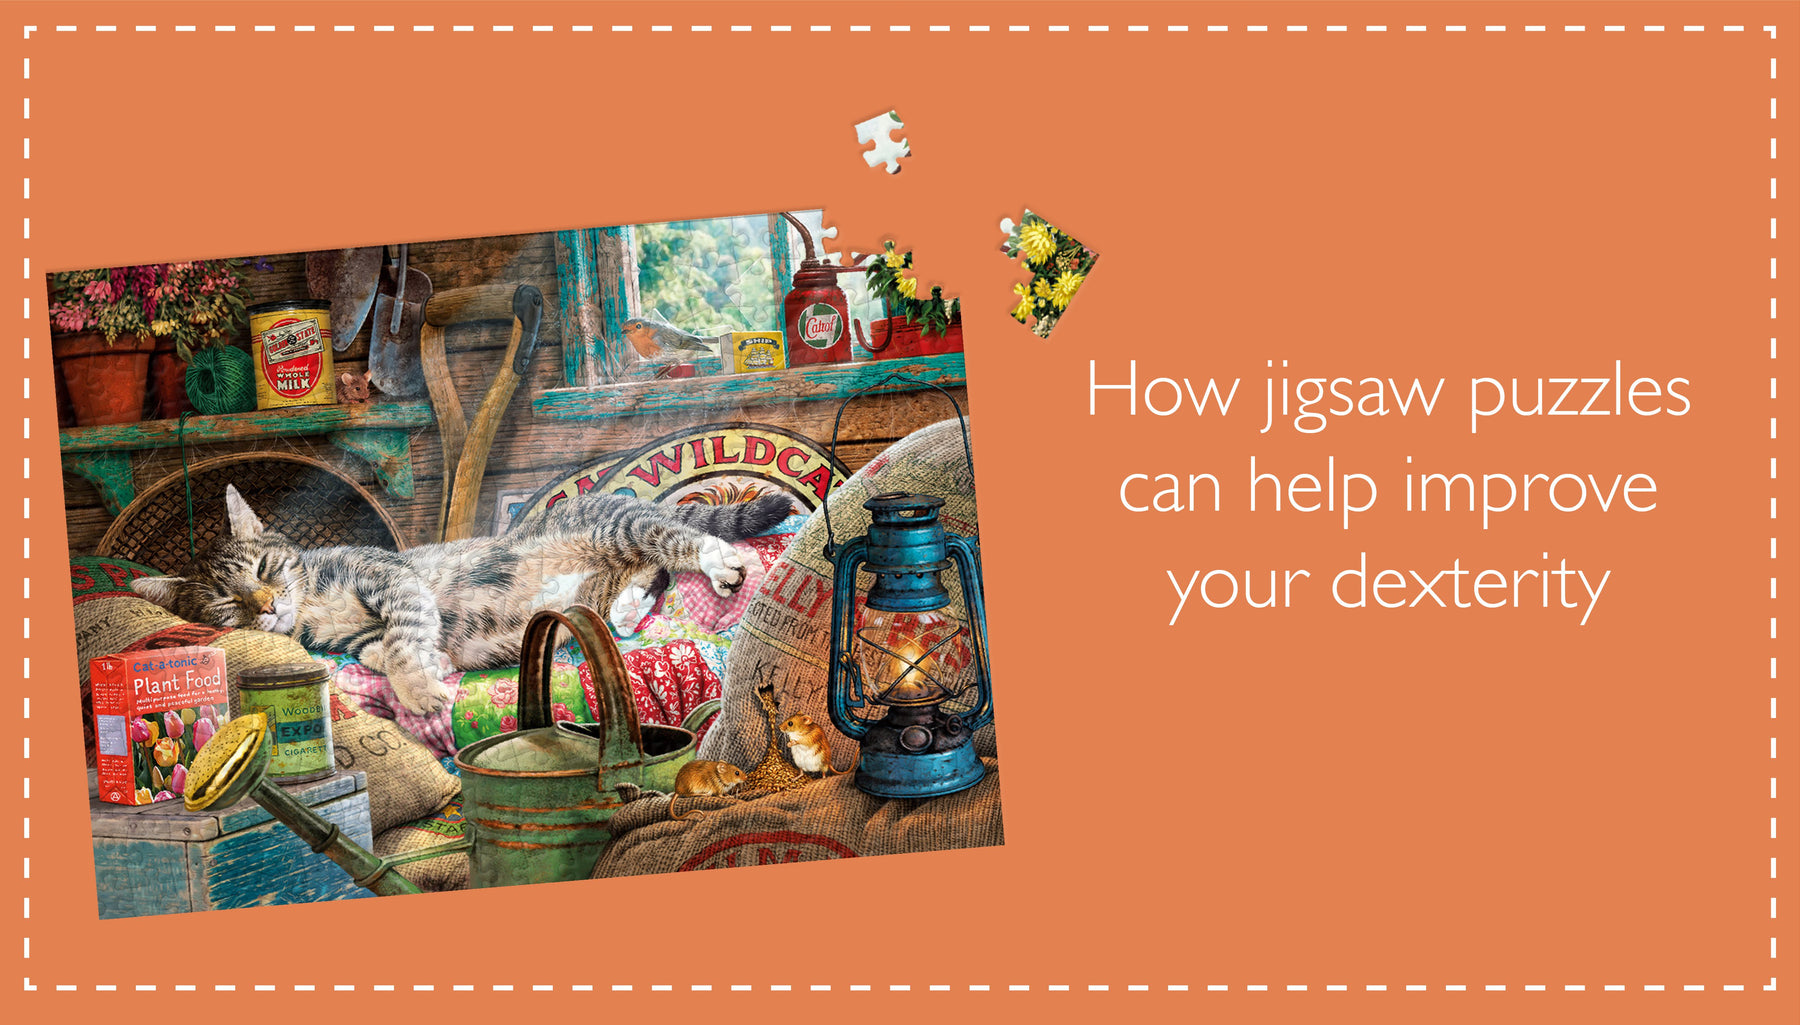 How jigsaw puzzles can help improve your dexterity